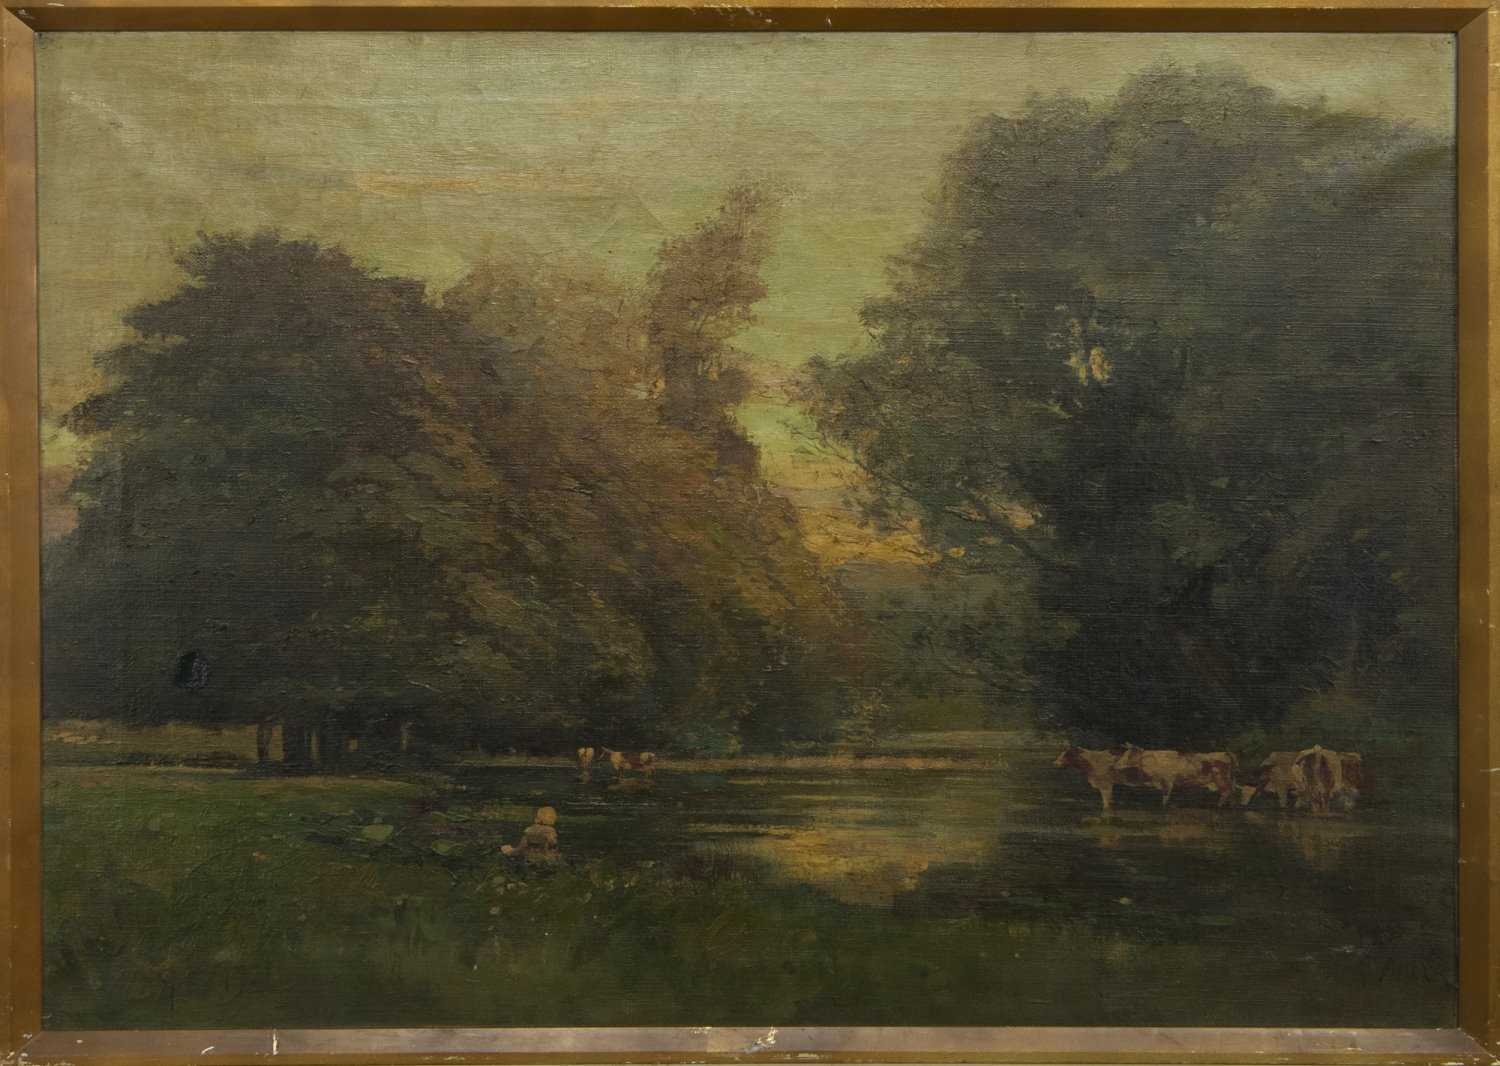 Lot 90 - WATERING THE CATTLE, AN OIL BY GEORGE NEIL